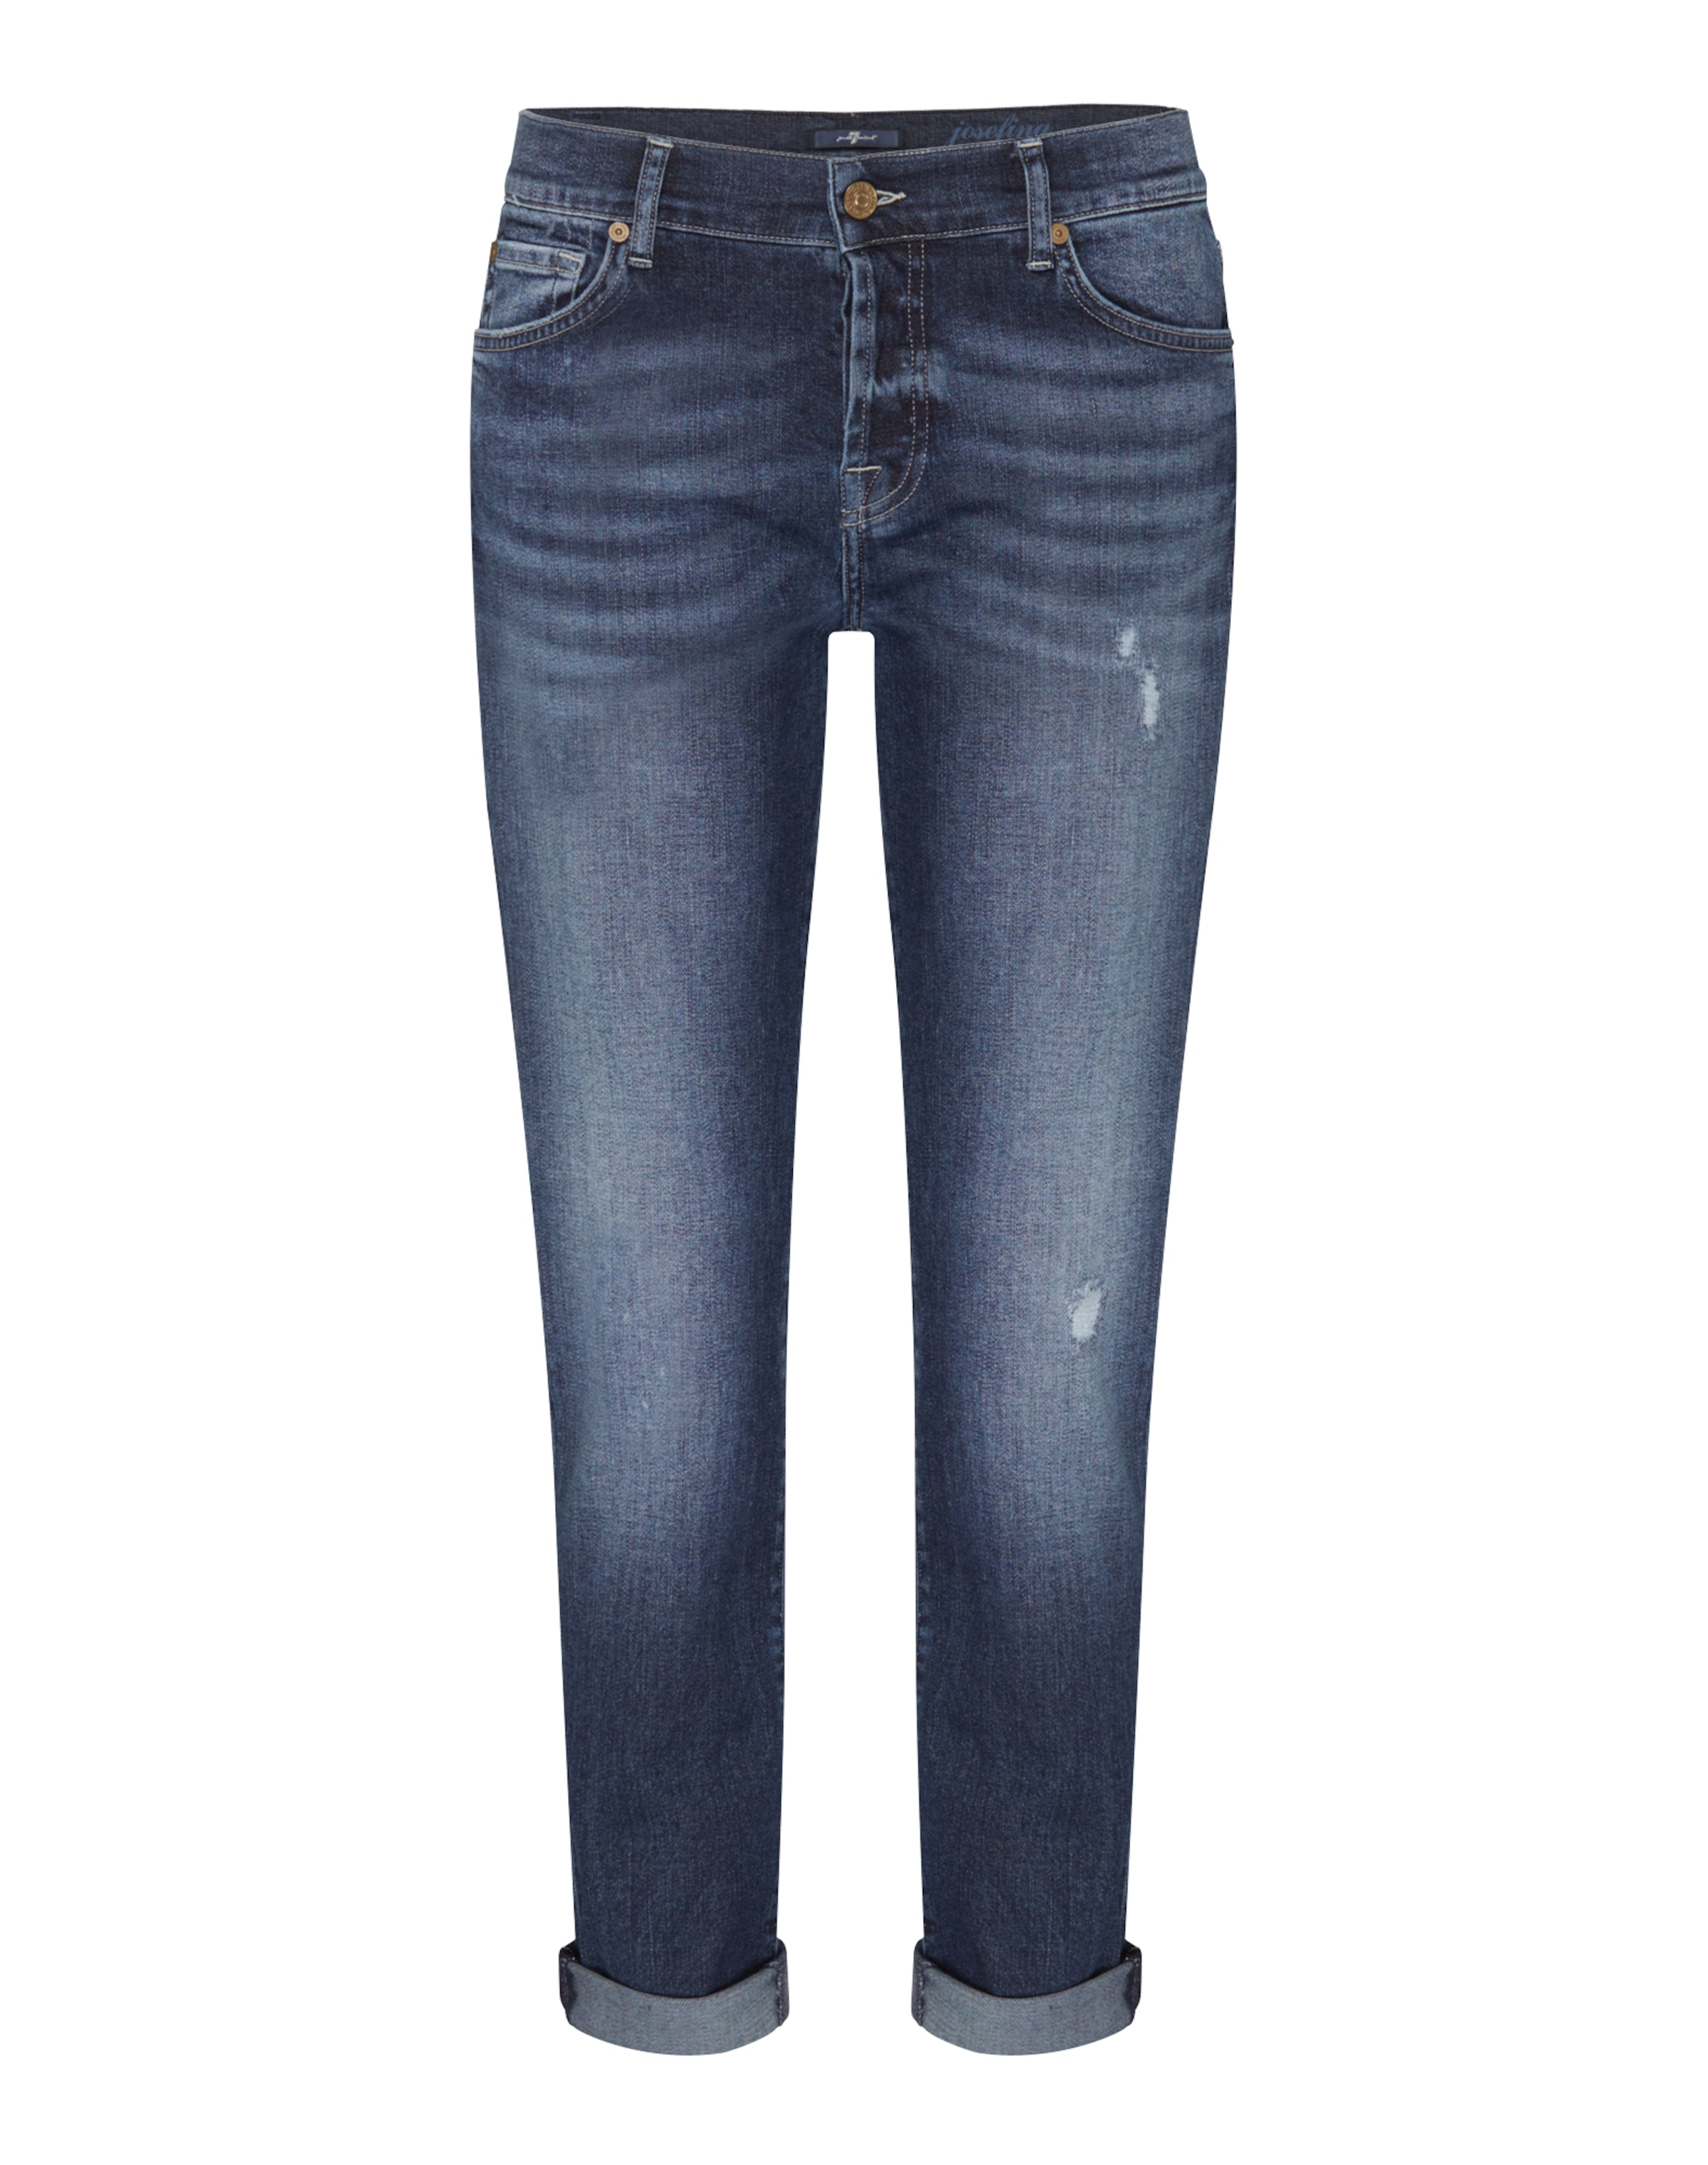 7 for all mankind 'JOSEFINA' Straight Jeans Footlocker Günstiger Preis YQbSe